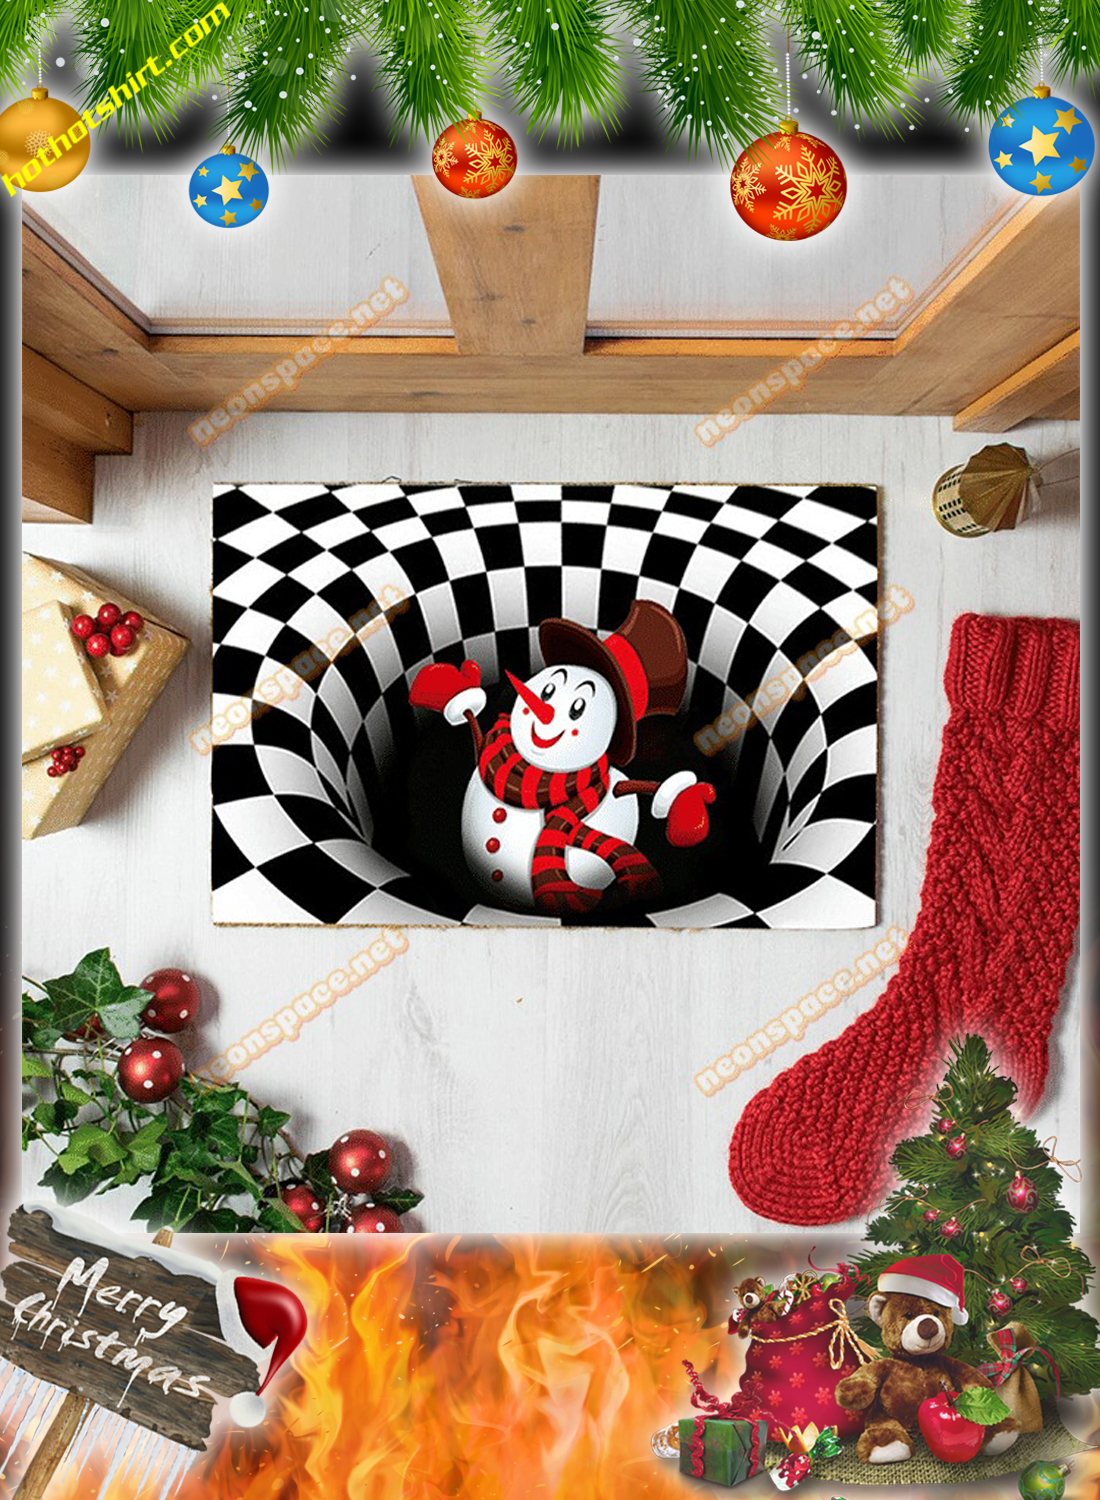 Cheer snowman christmas 3D illusion doormat 1